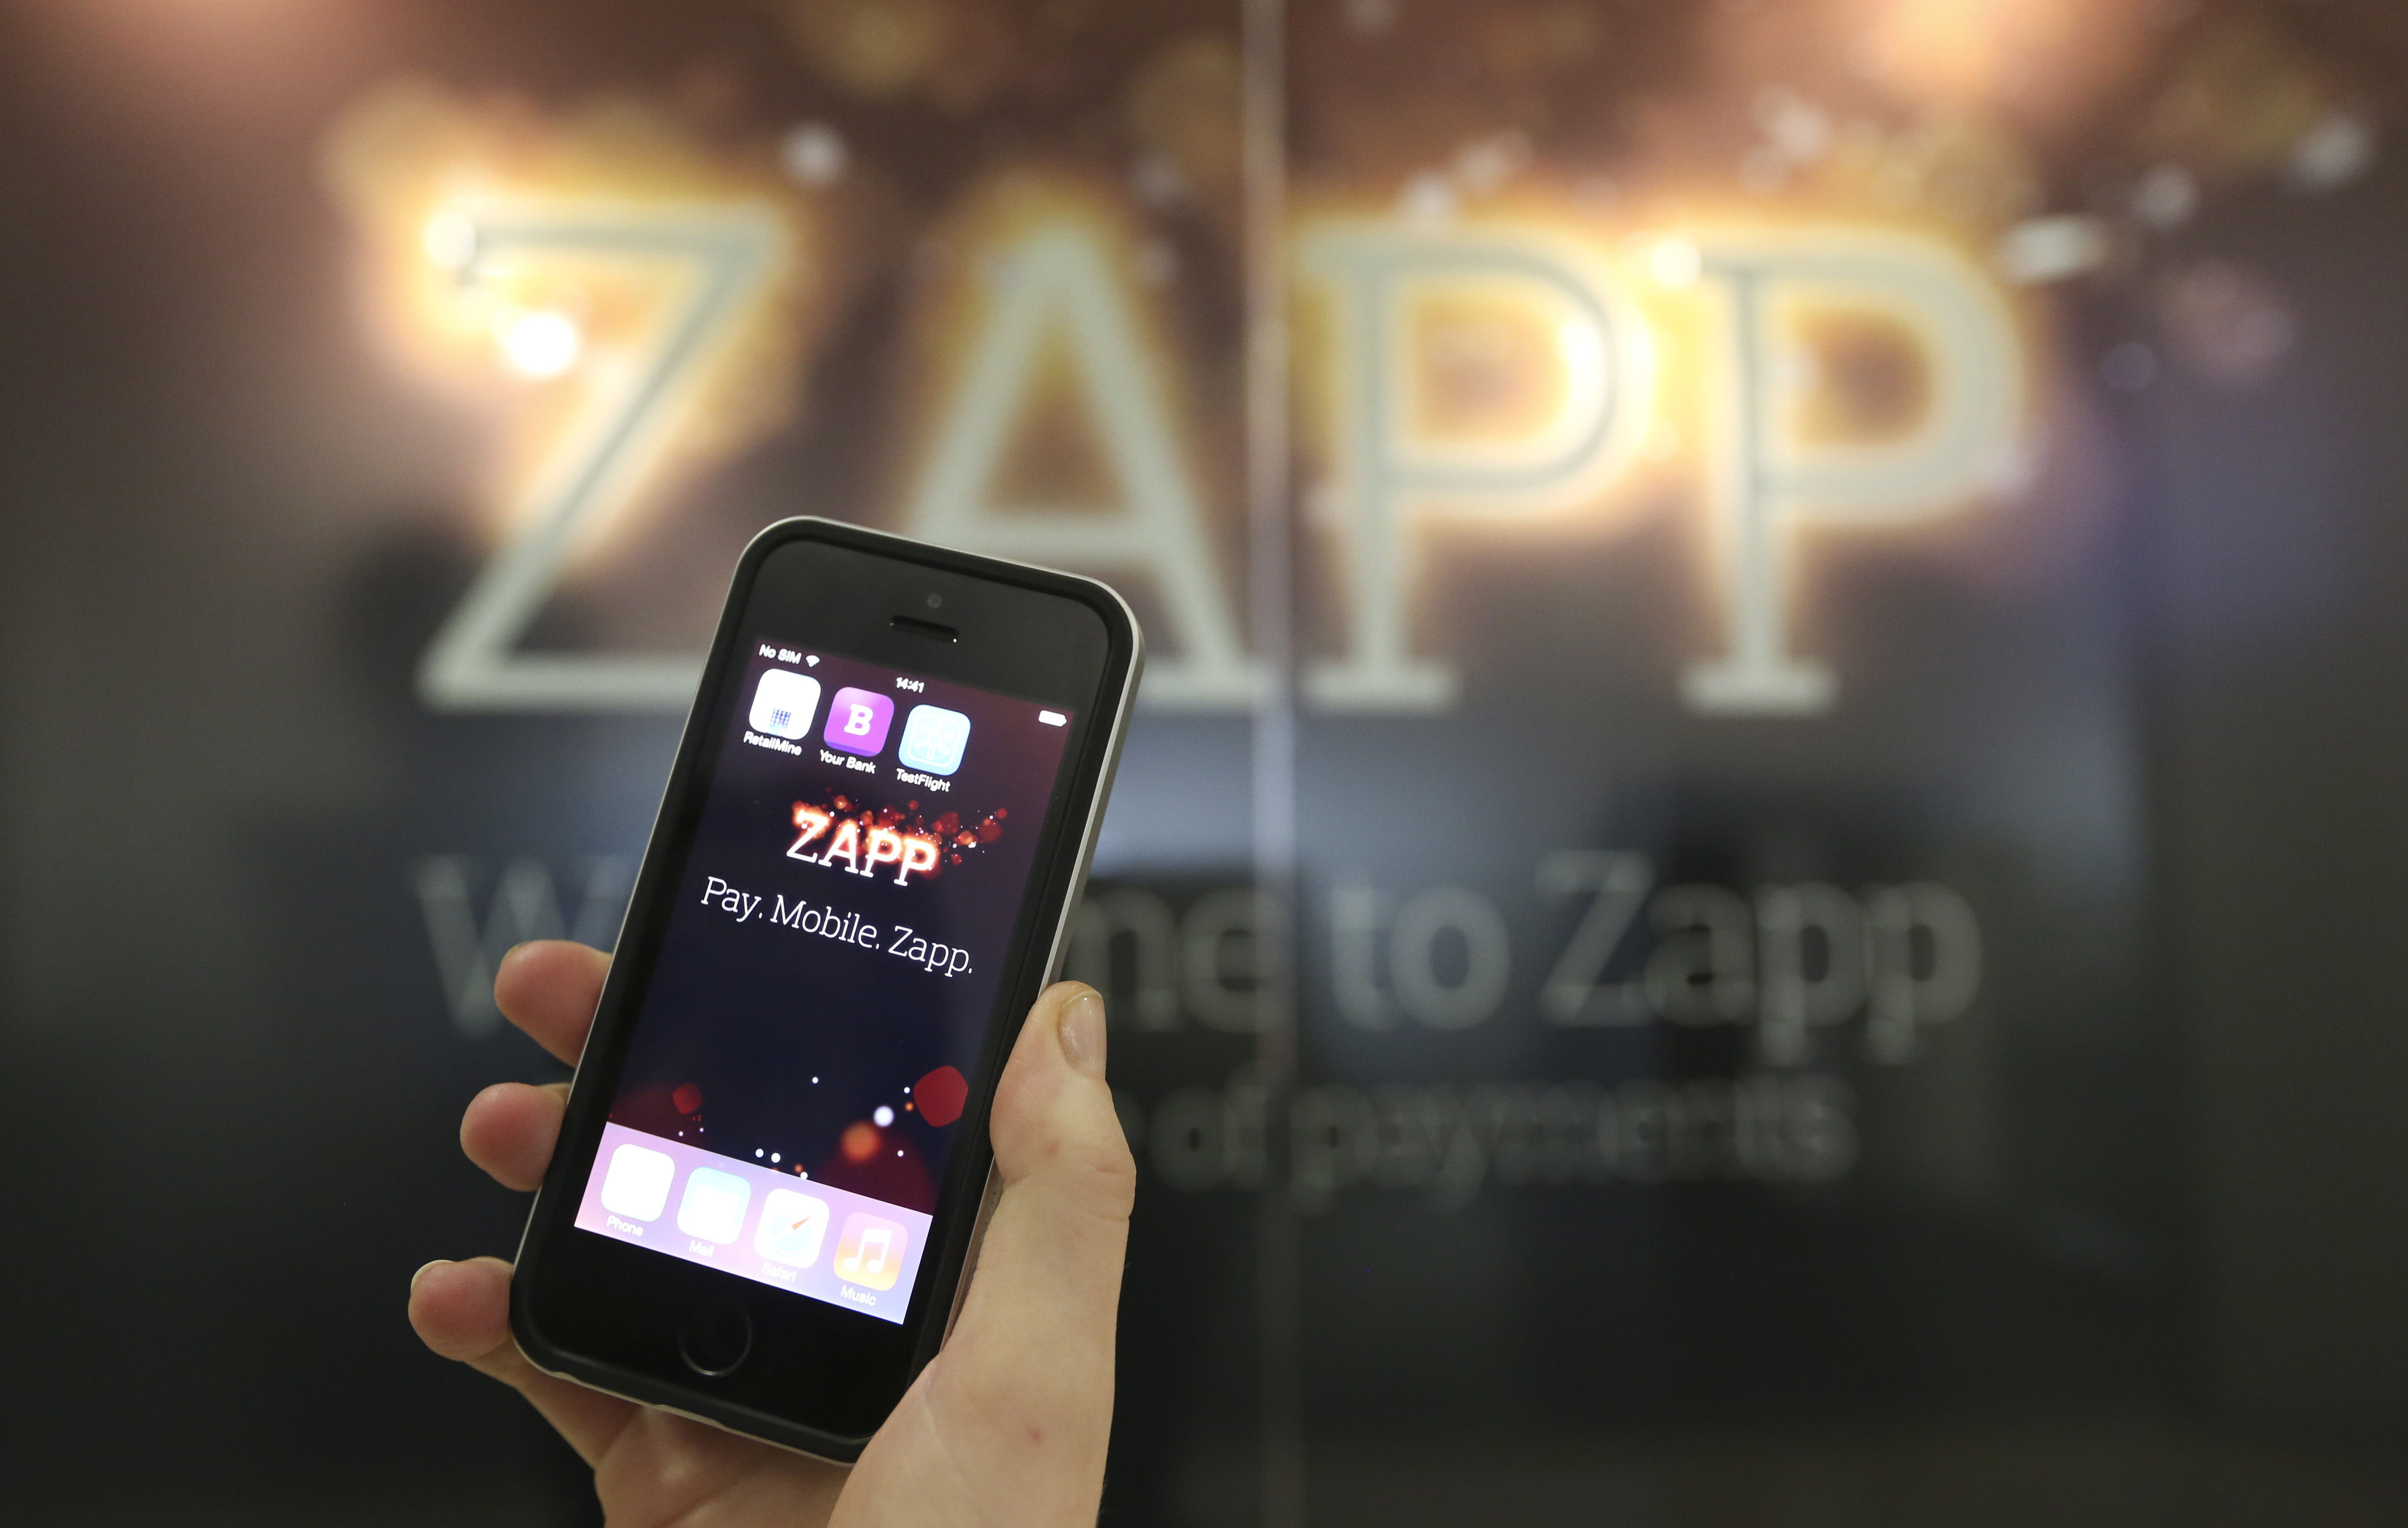 TouchGo Partner with Zapp for Mobile Payments